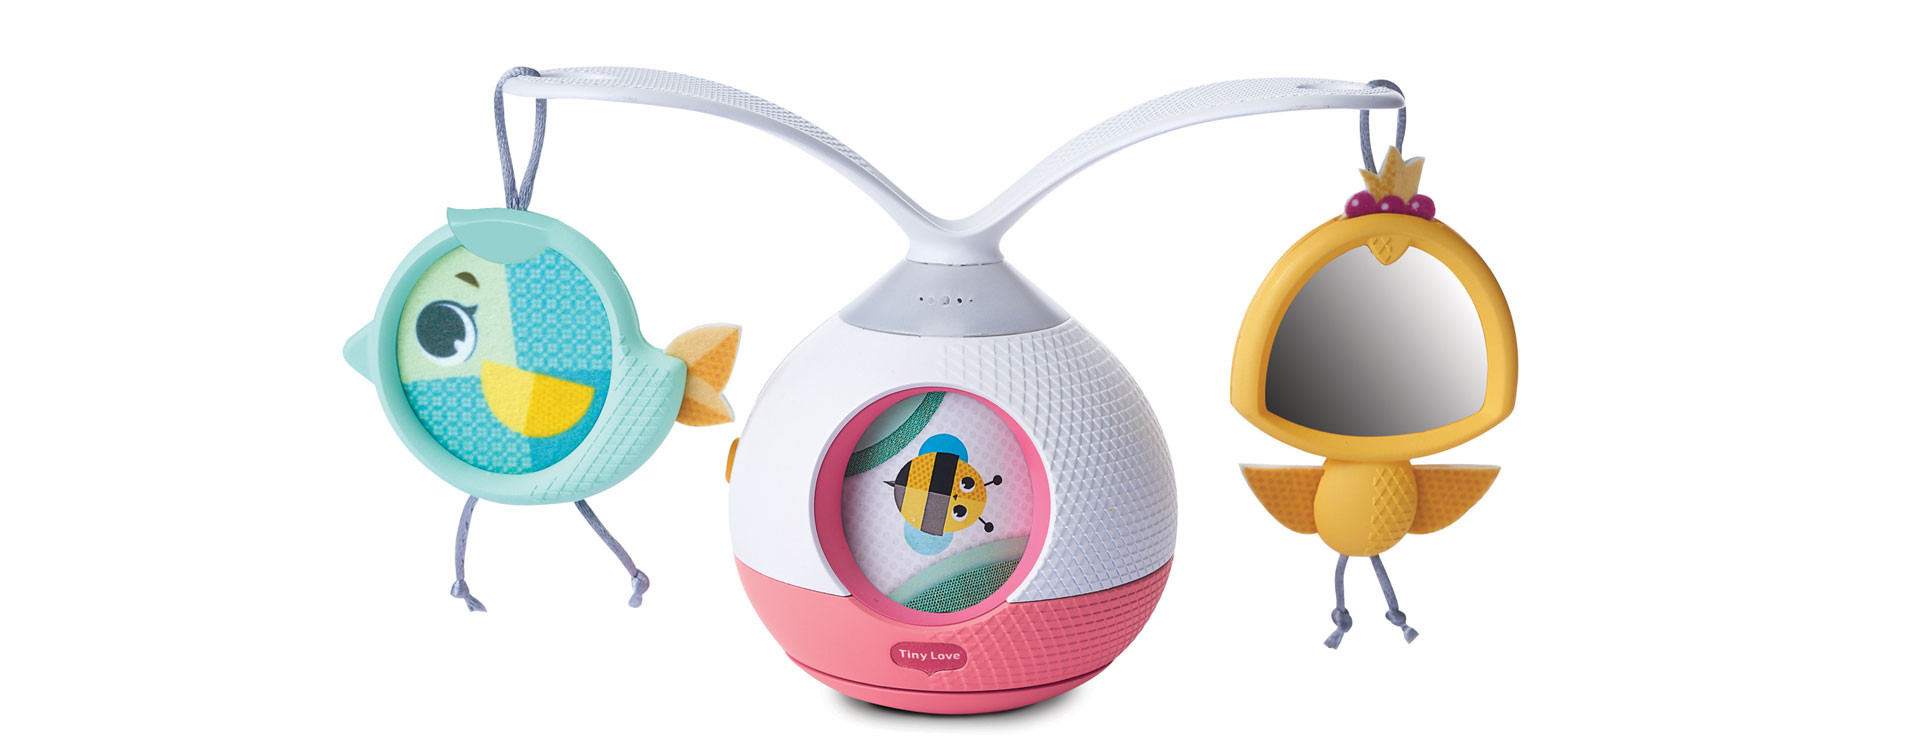 Toy with Music and Lights 0M + Princess Tales Tiny Love Tummy Time Mobile Entertainer